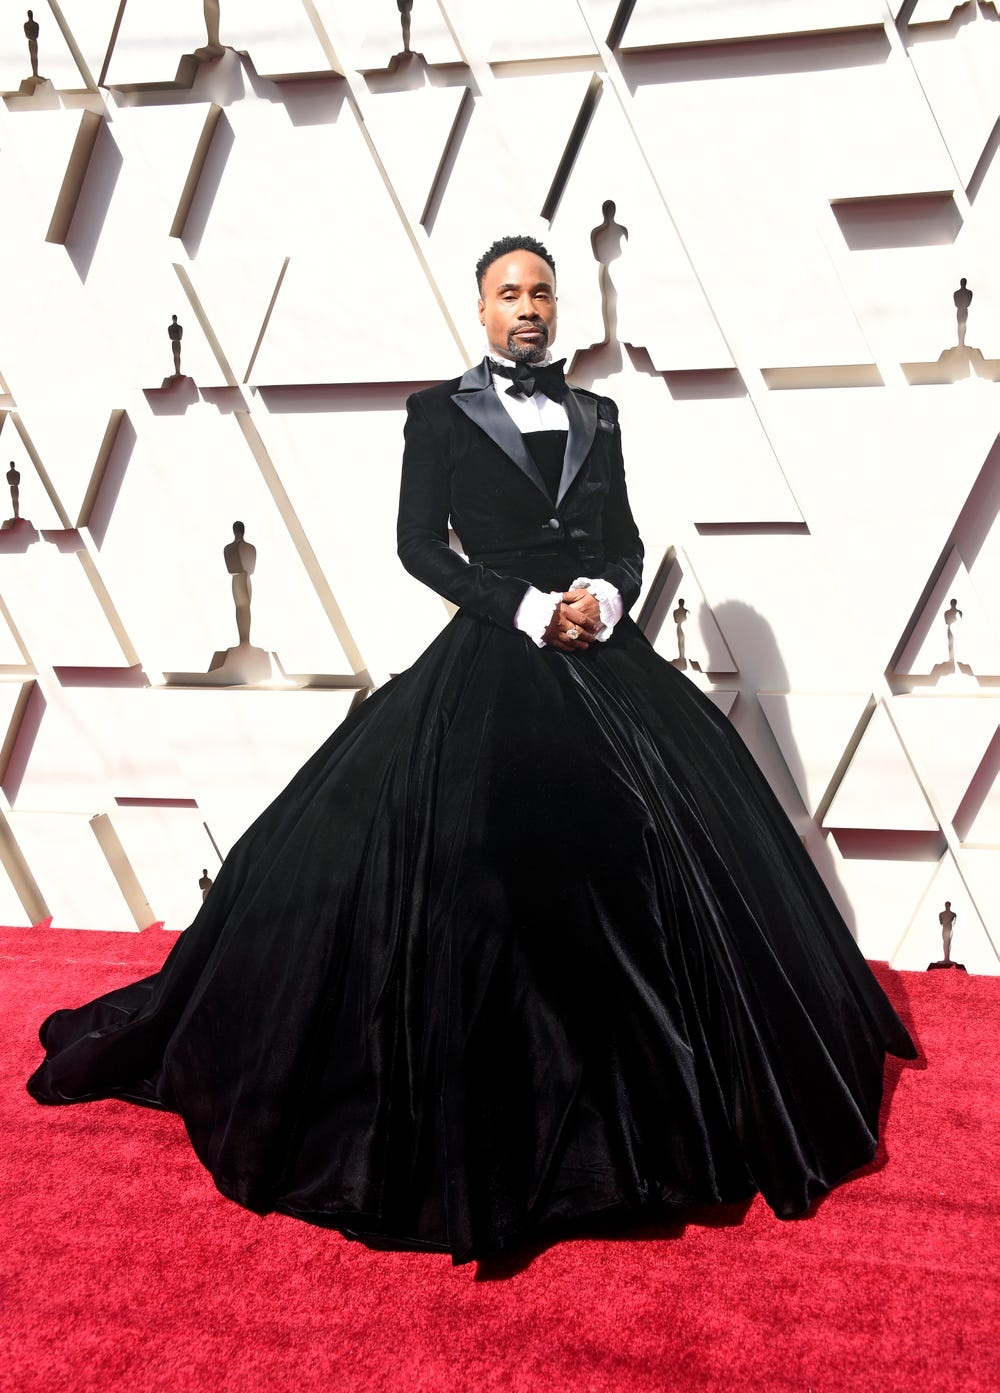 Billy Porter at the 2019 Oscars in a black ball gown with tuxedo on top and full skirt